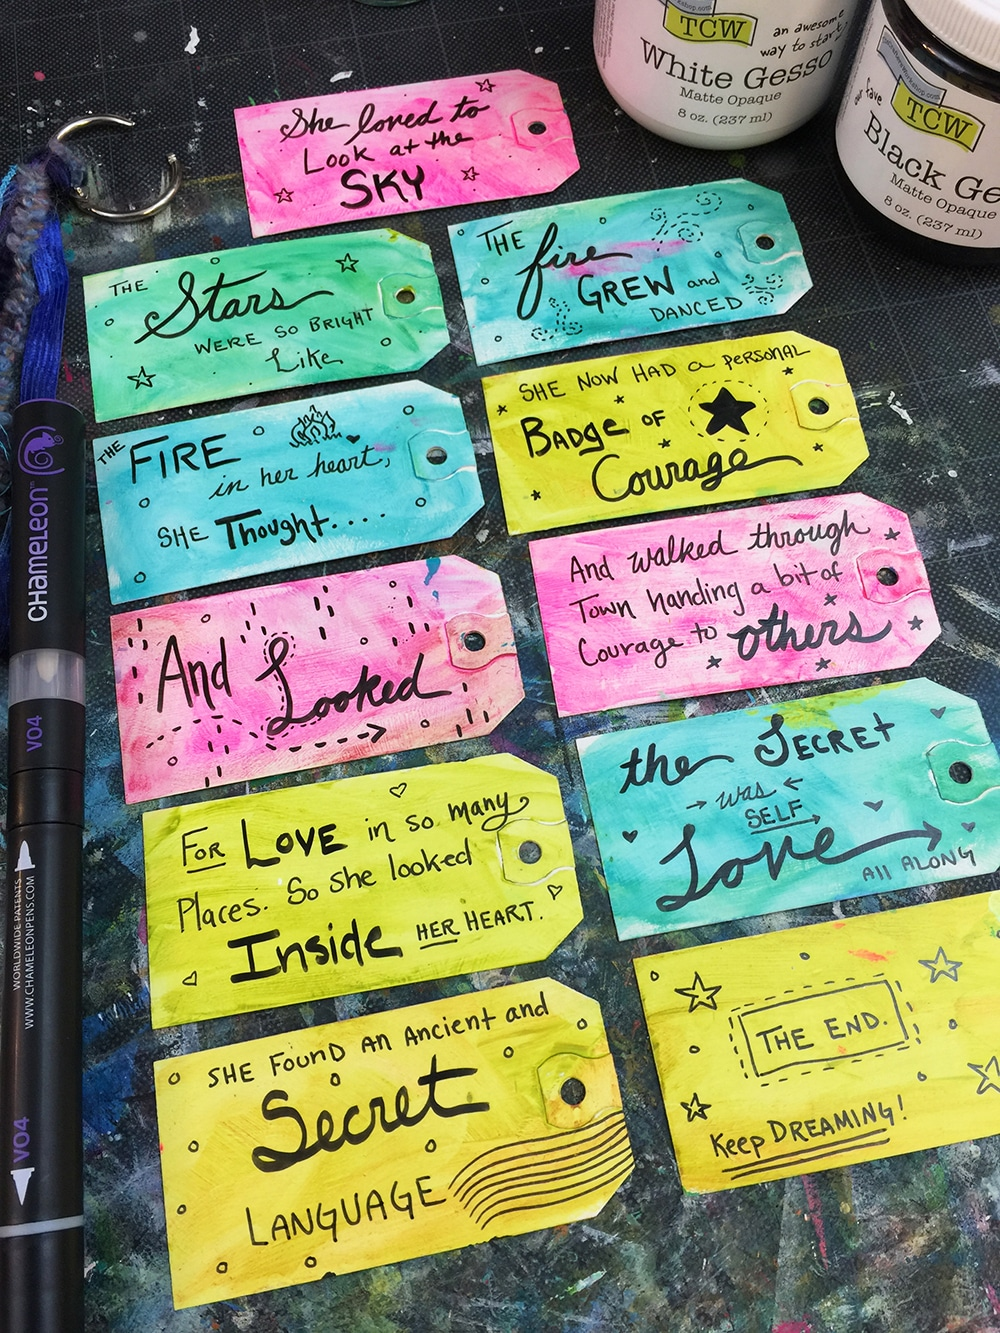 Story added to the back of my tags with hand lettering.